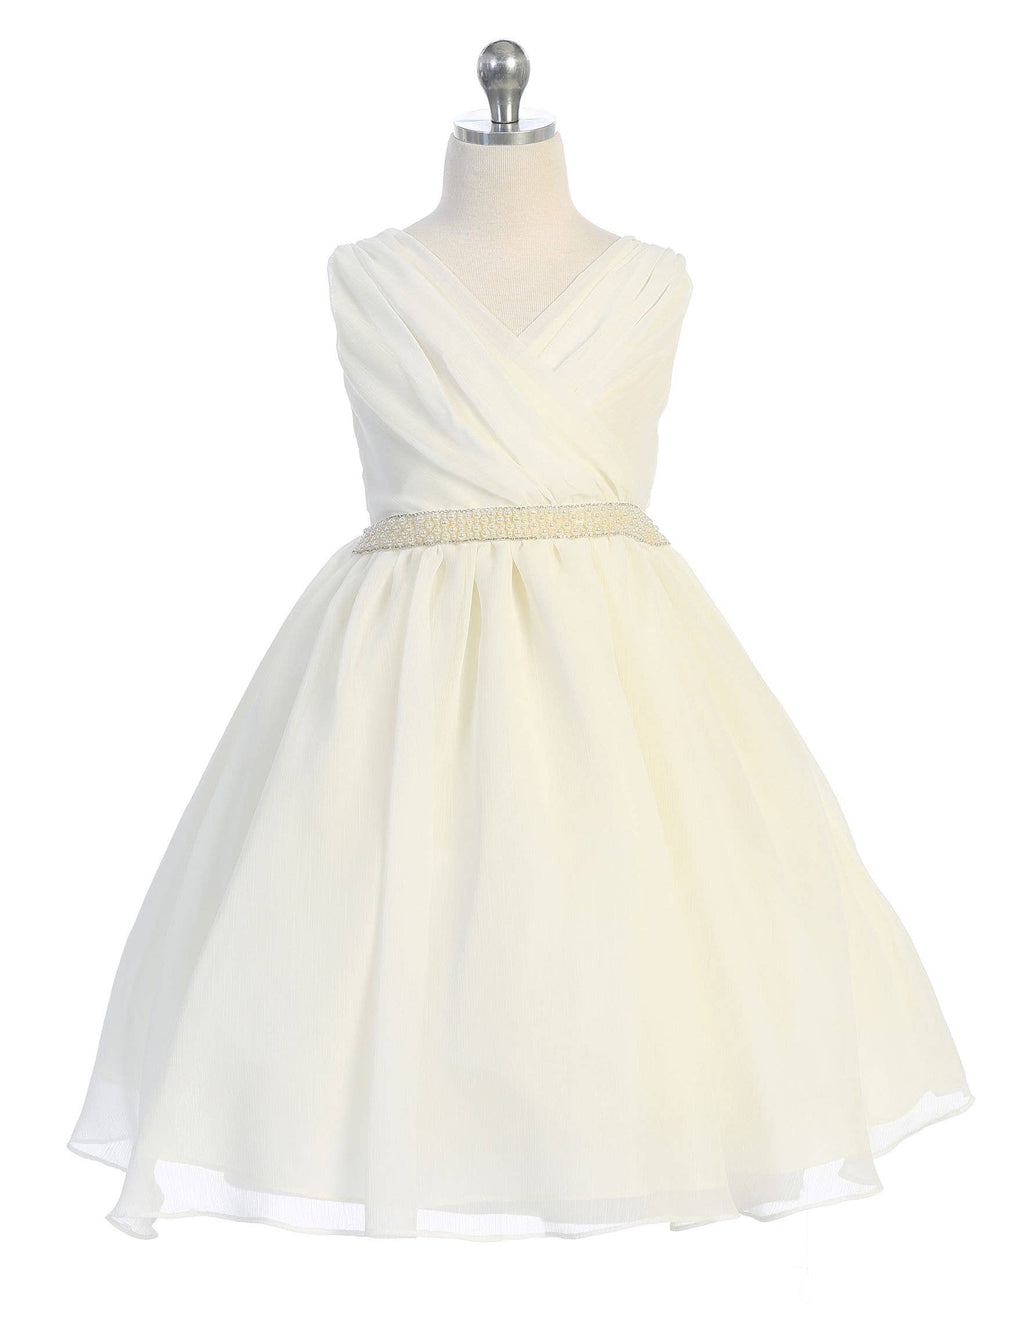 Ivory Cross Body Chiffon Dress